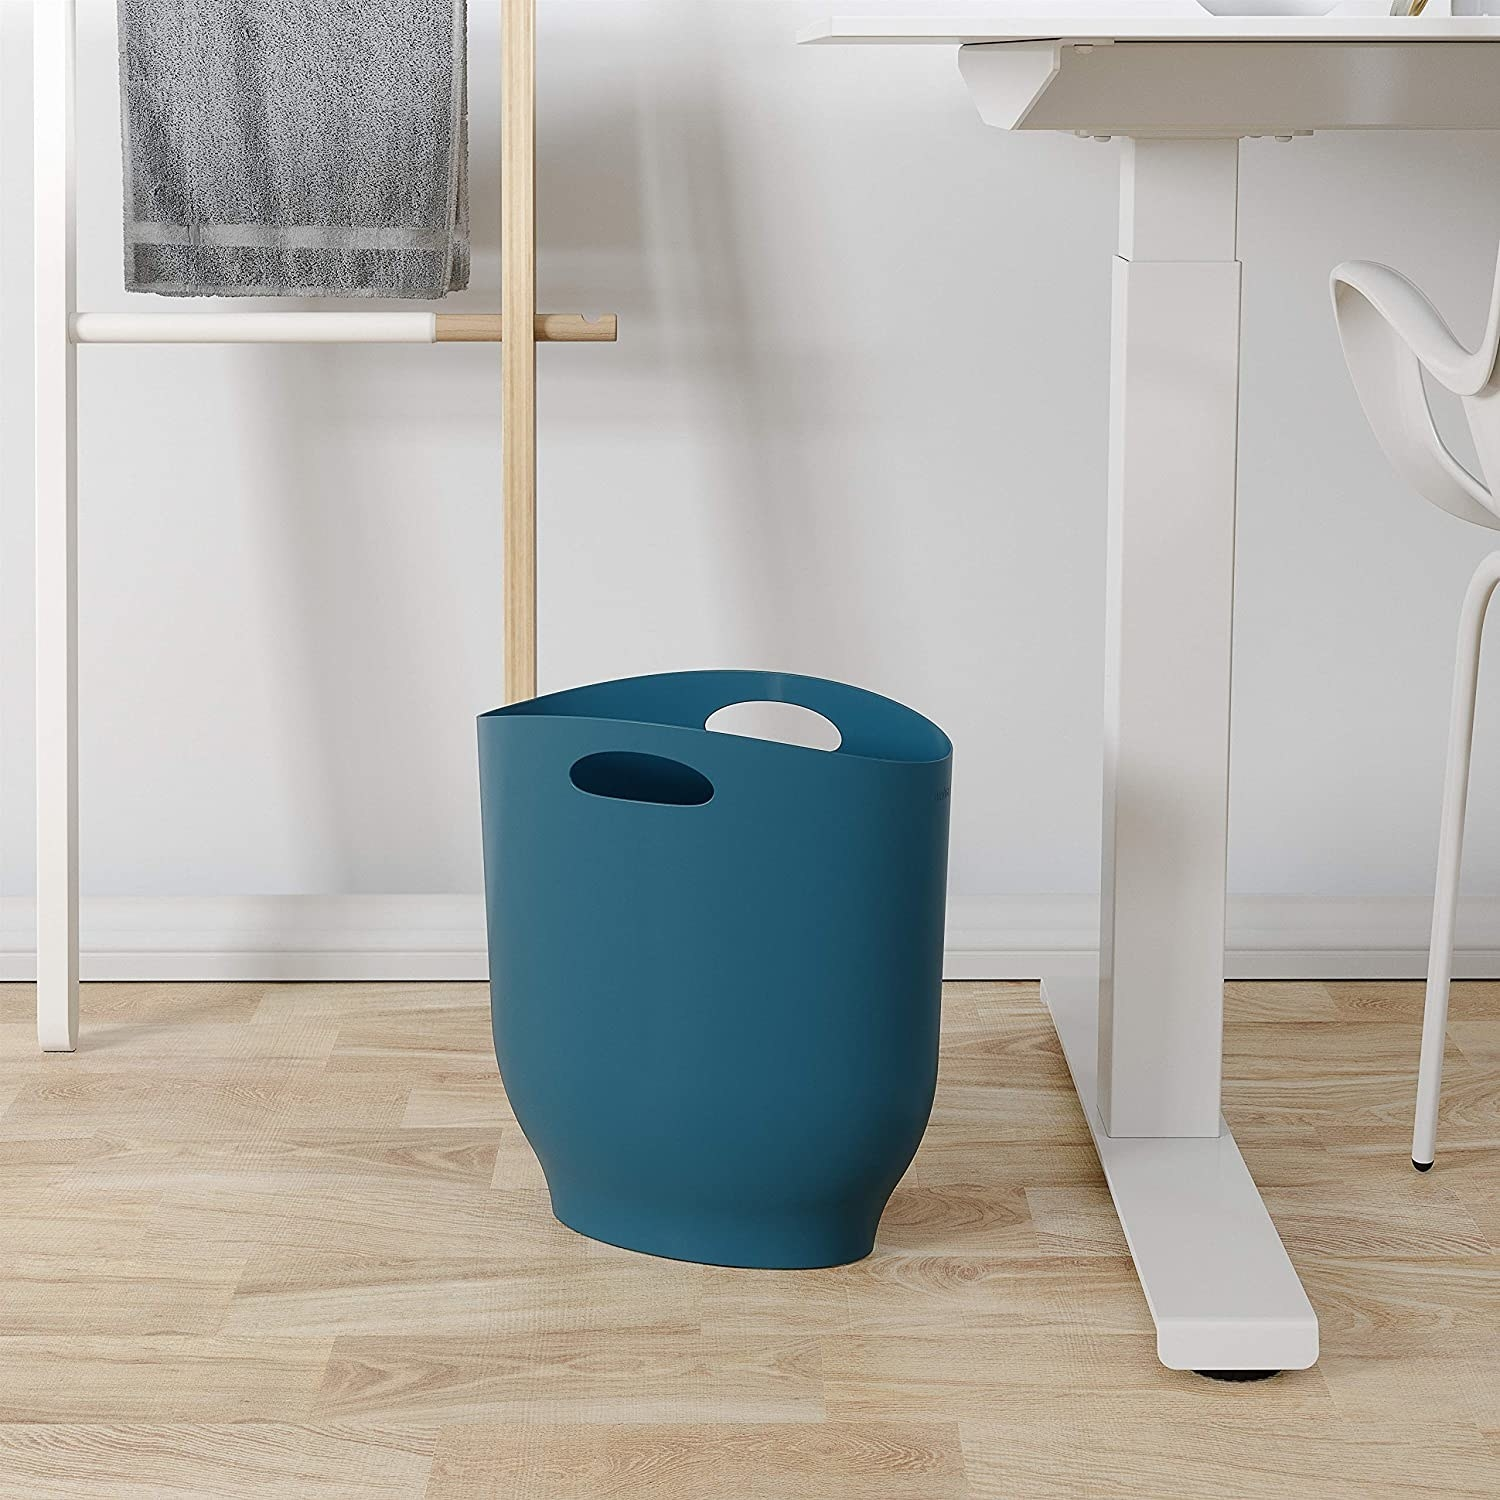 A slim trash can next to a modern desk